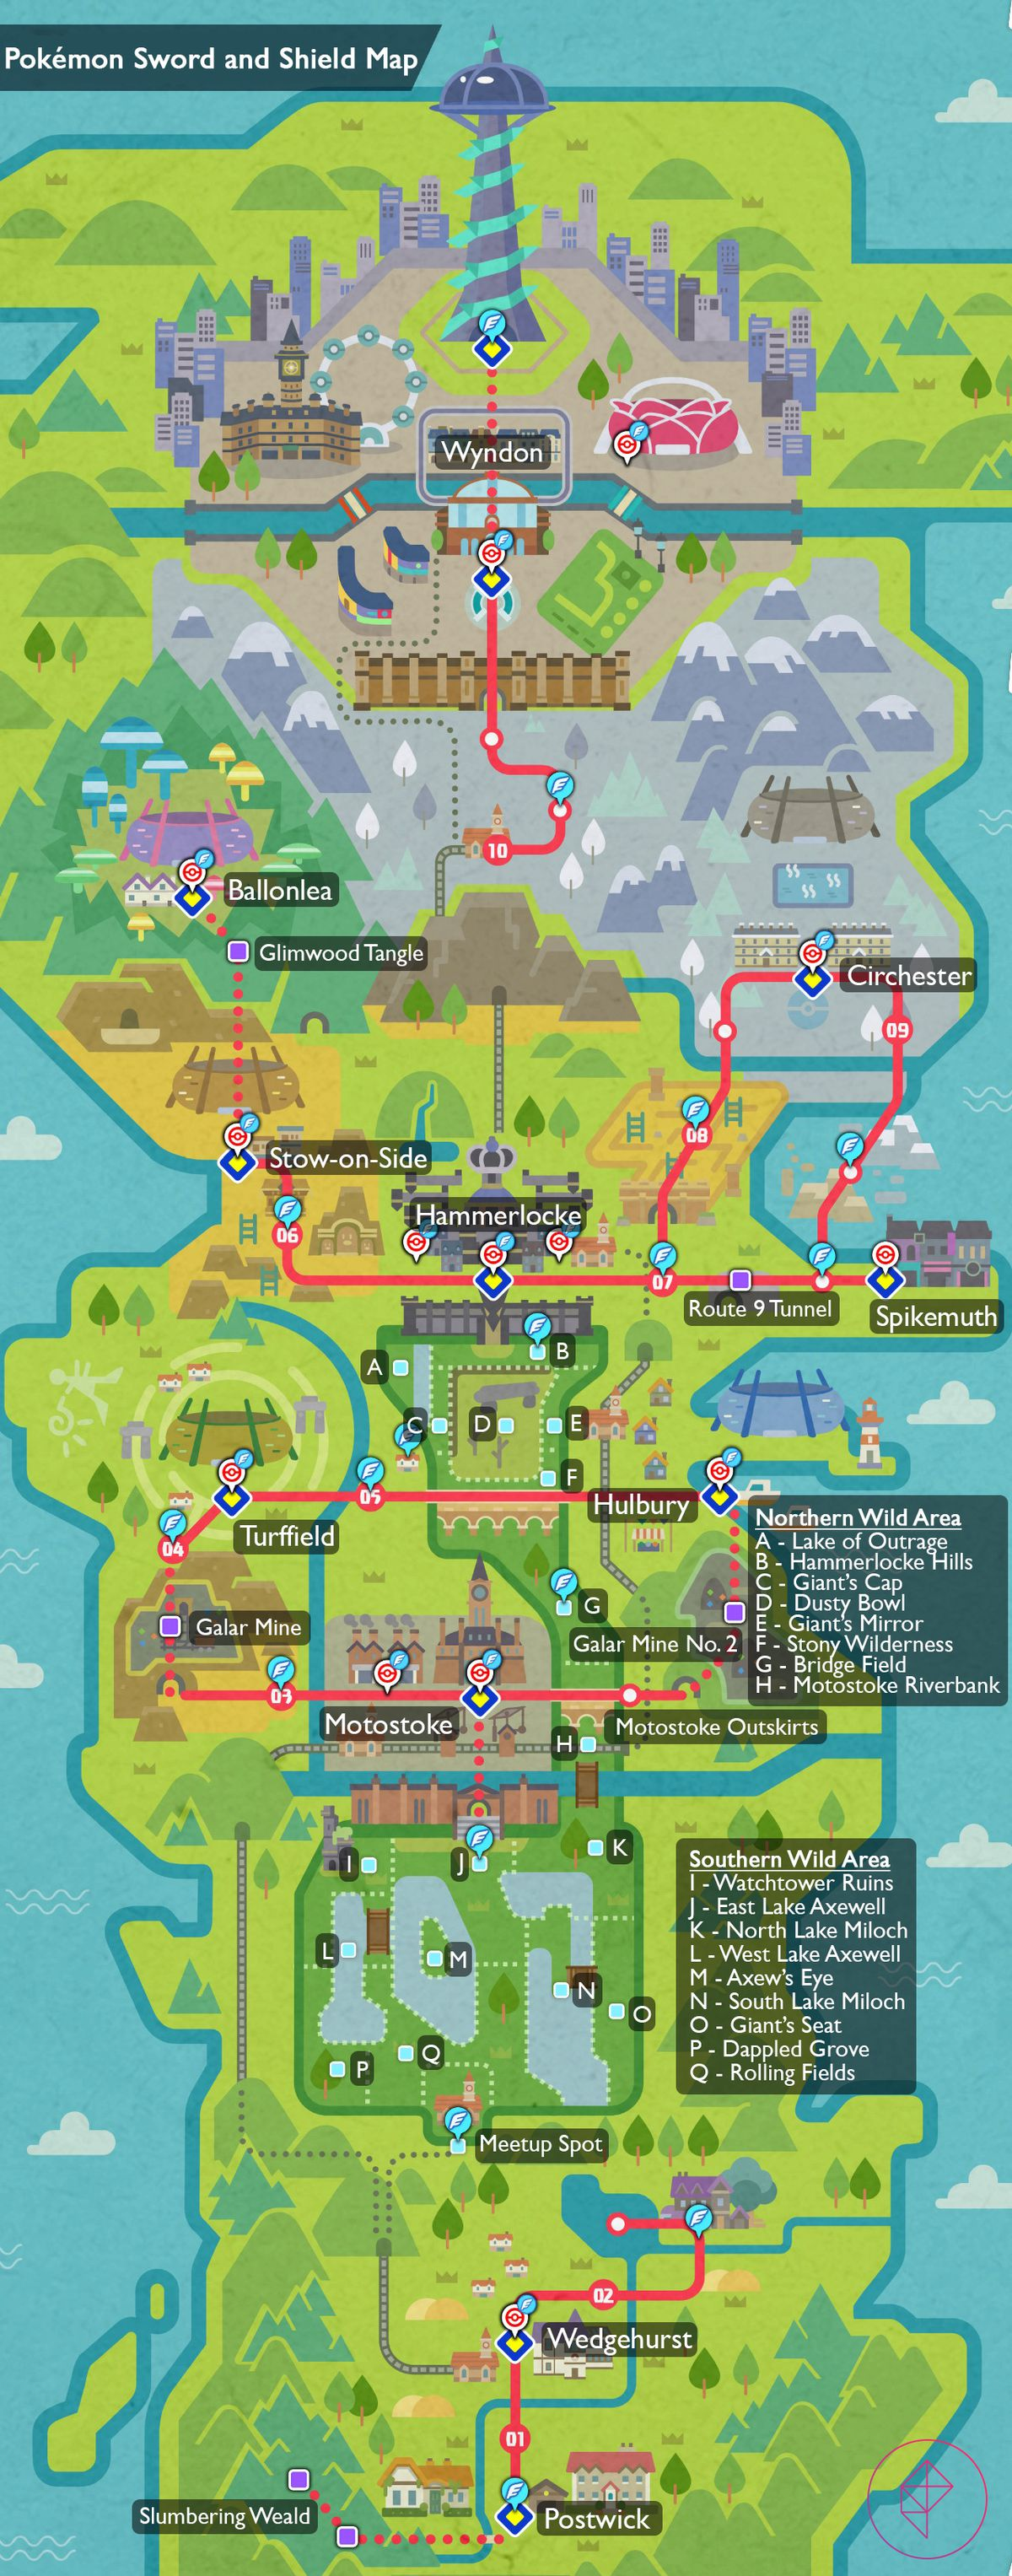 A fully stitched-together map of the Pokémon region of Galar